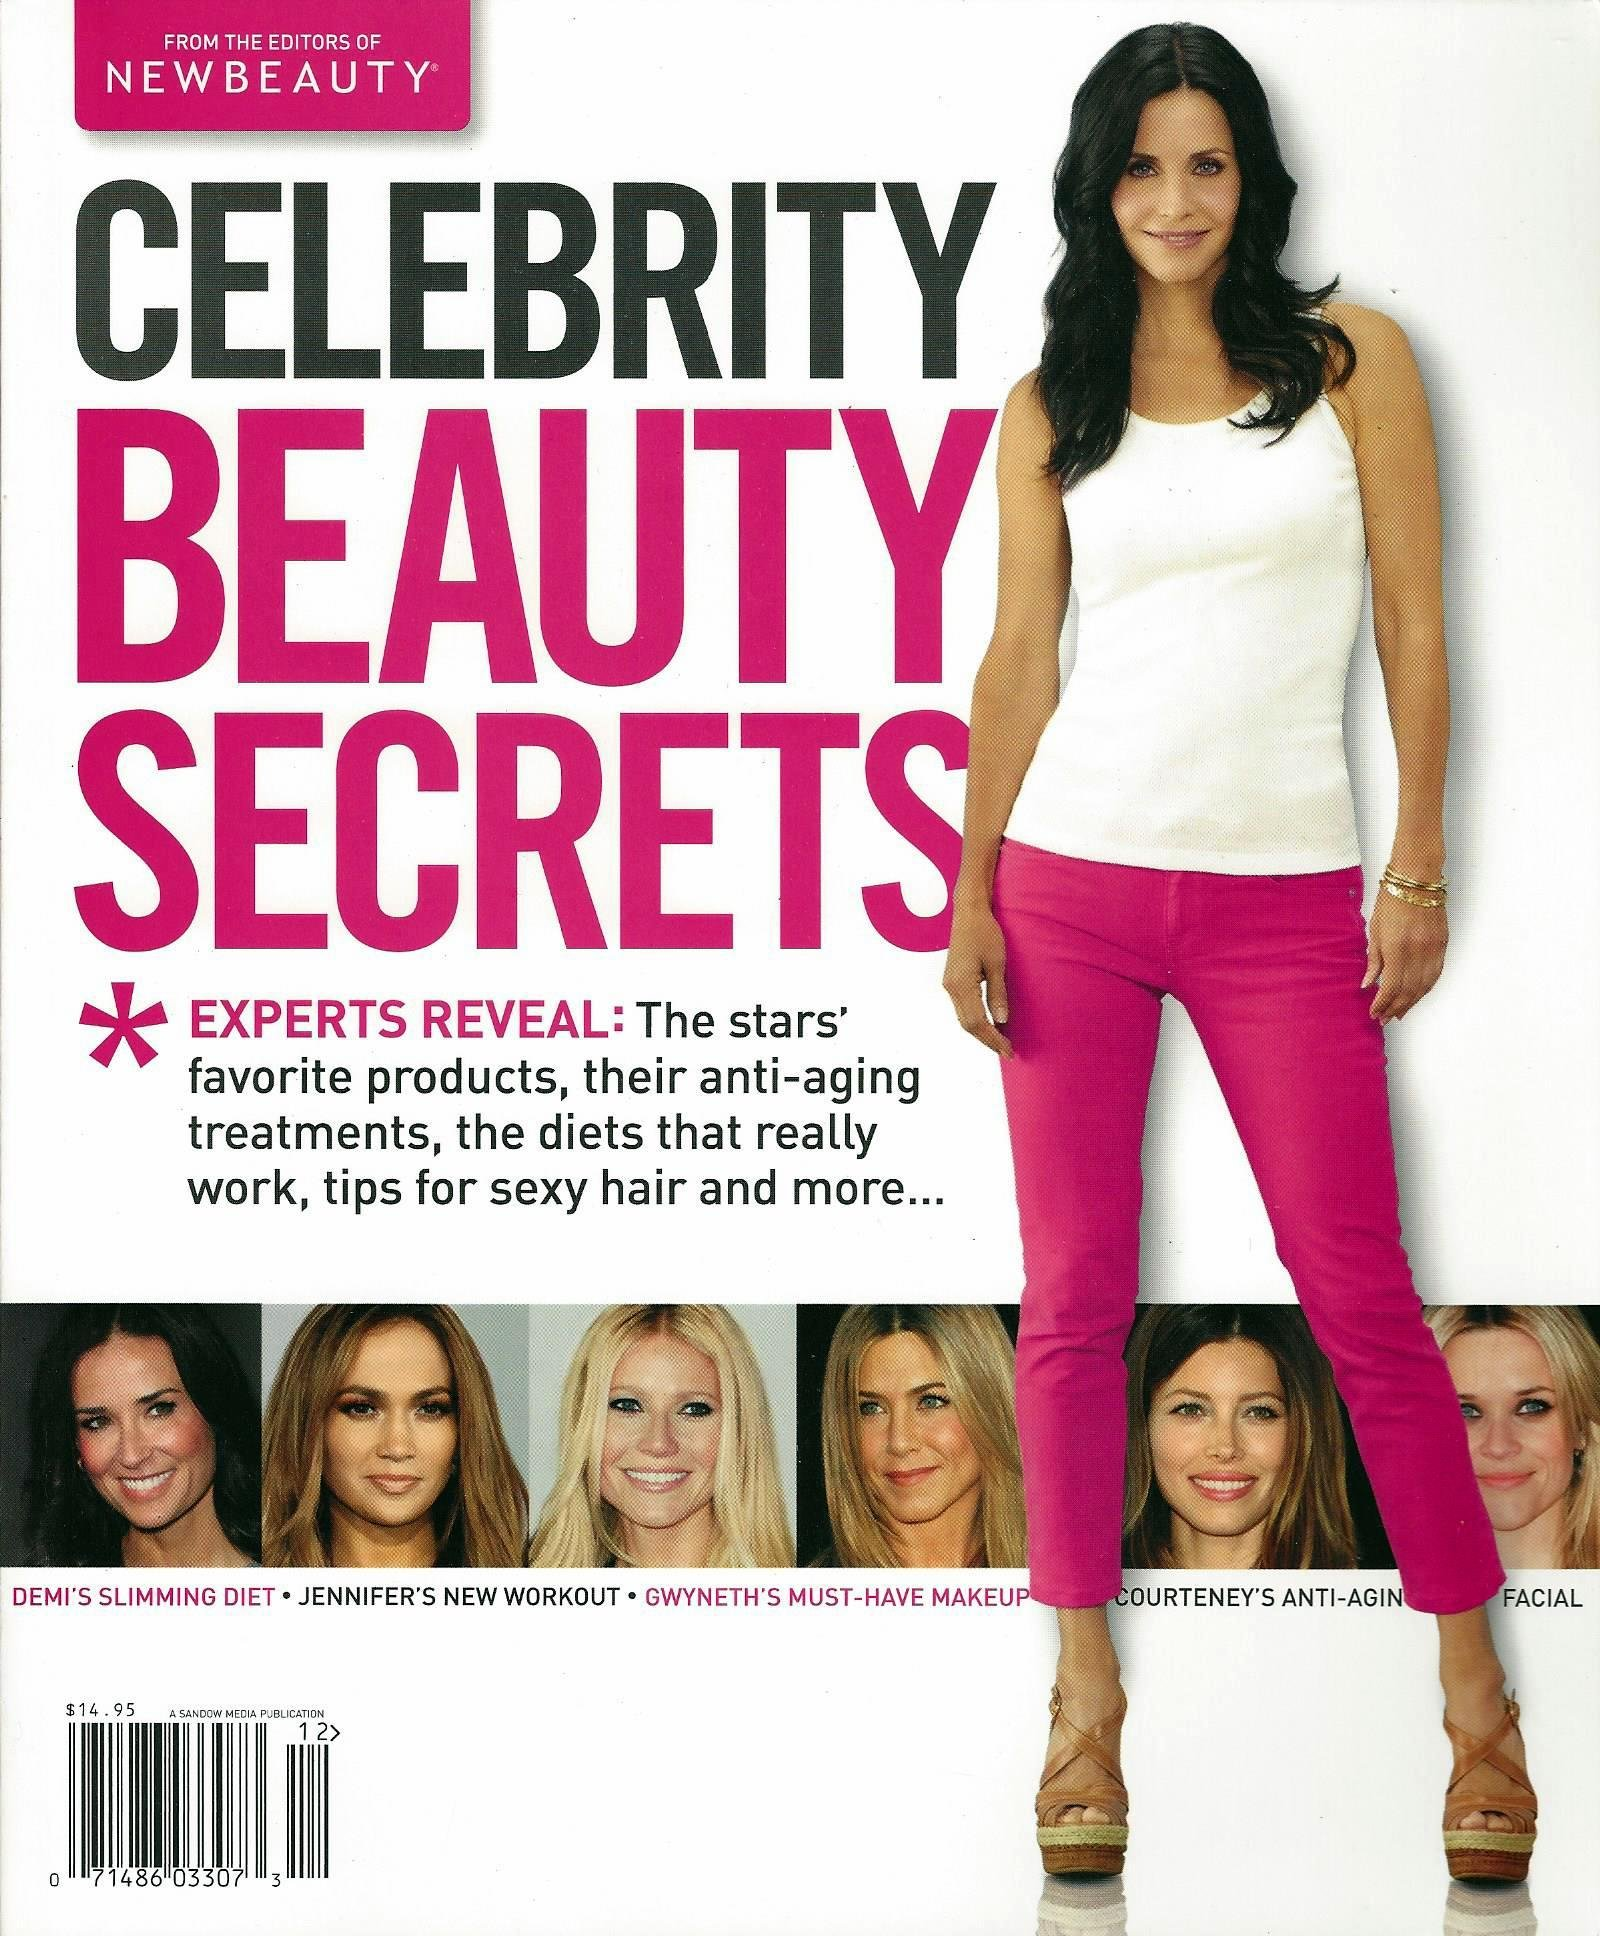 Celebrity Beauty Secrets: Editors of New Beauty: Amazon.com: Books